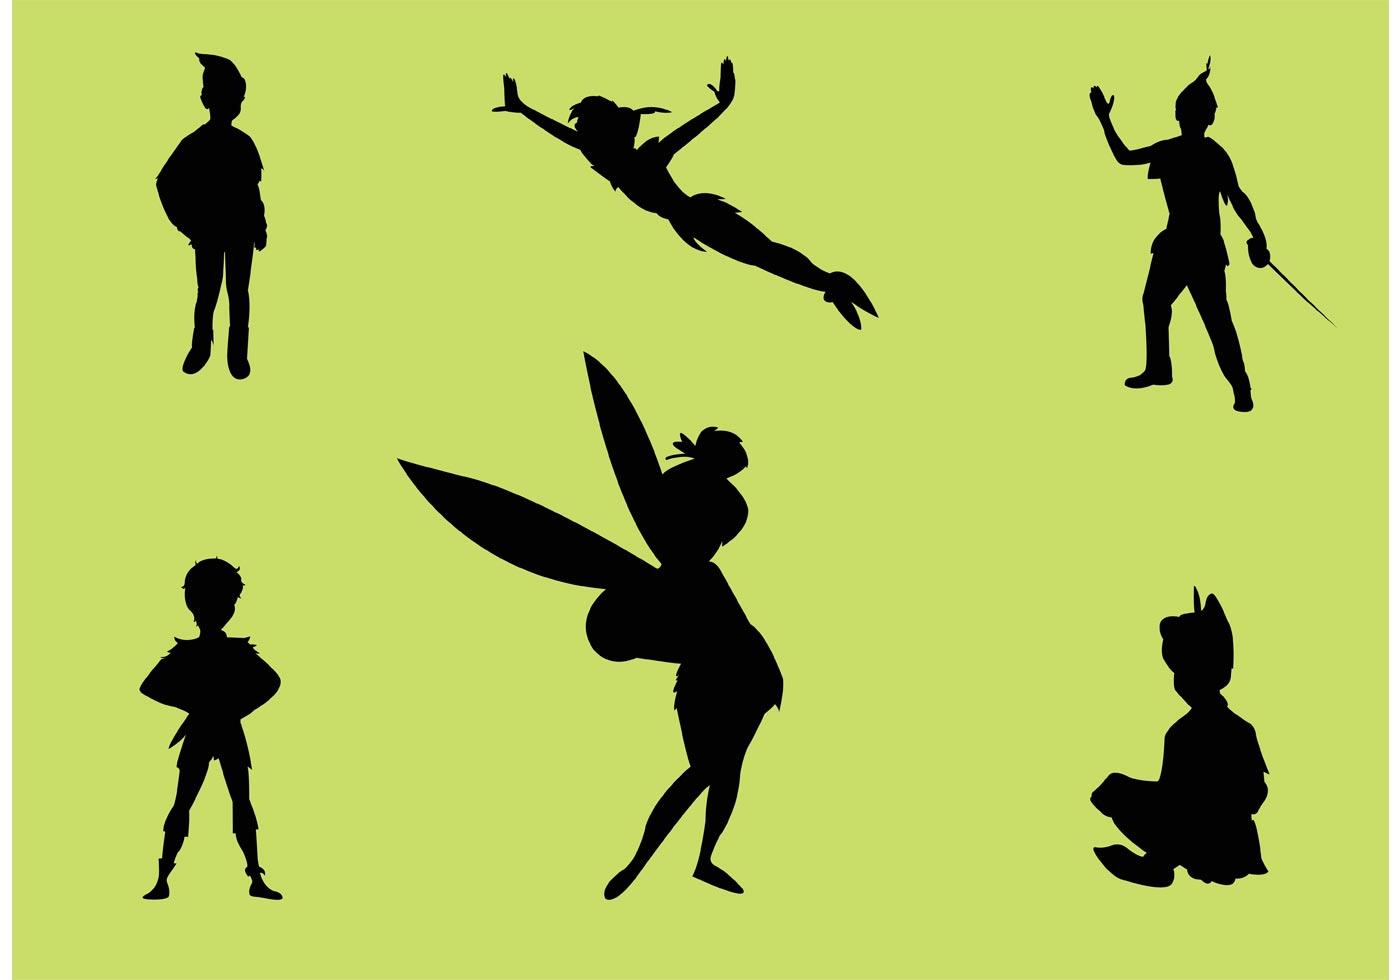 Hd Peter Pan And Tinkerbell Flying Vector Images » Free Vector Art